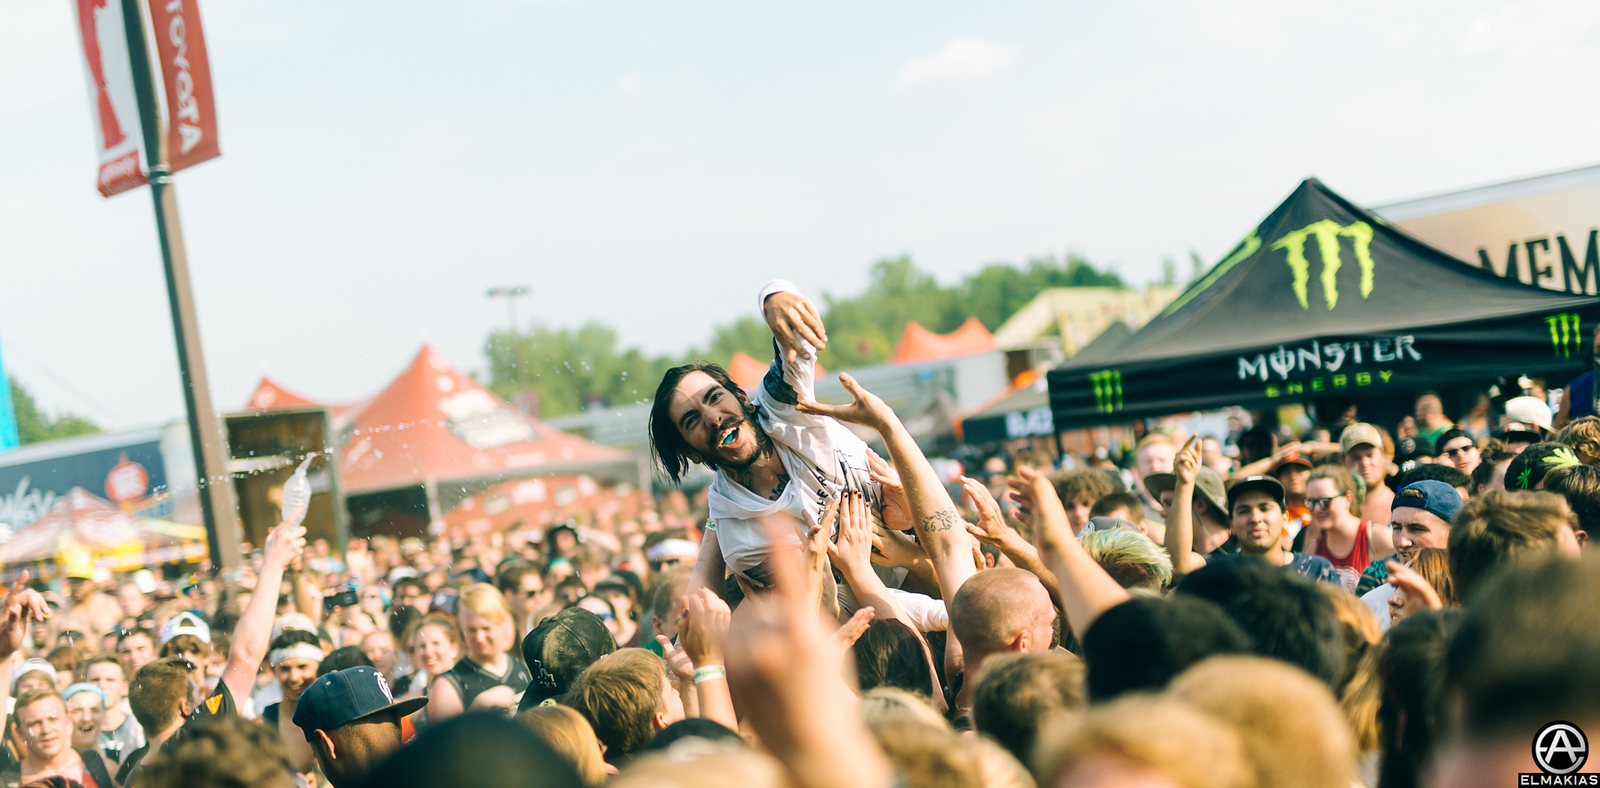 Carlos Navarro crowdsurfing during Beartooth live at Vans Warped Tour 2015 by Adam Elmakias